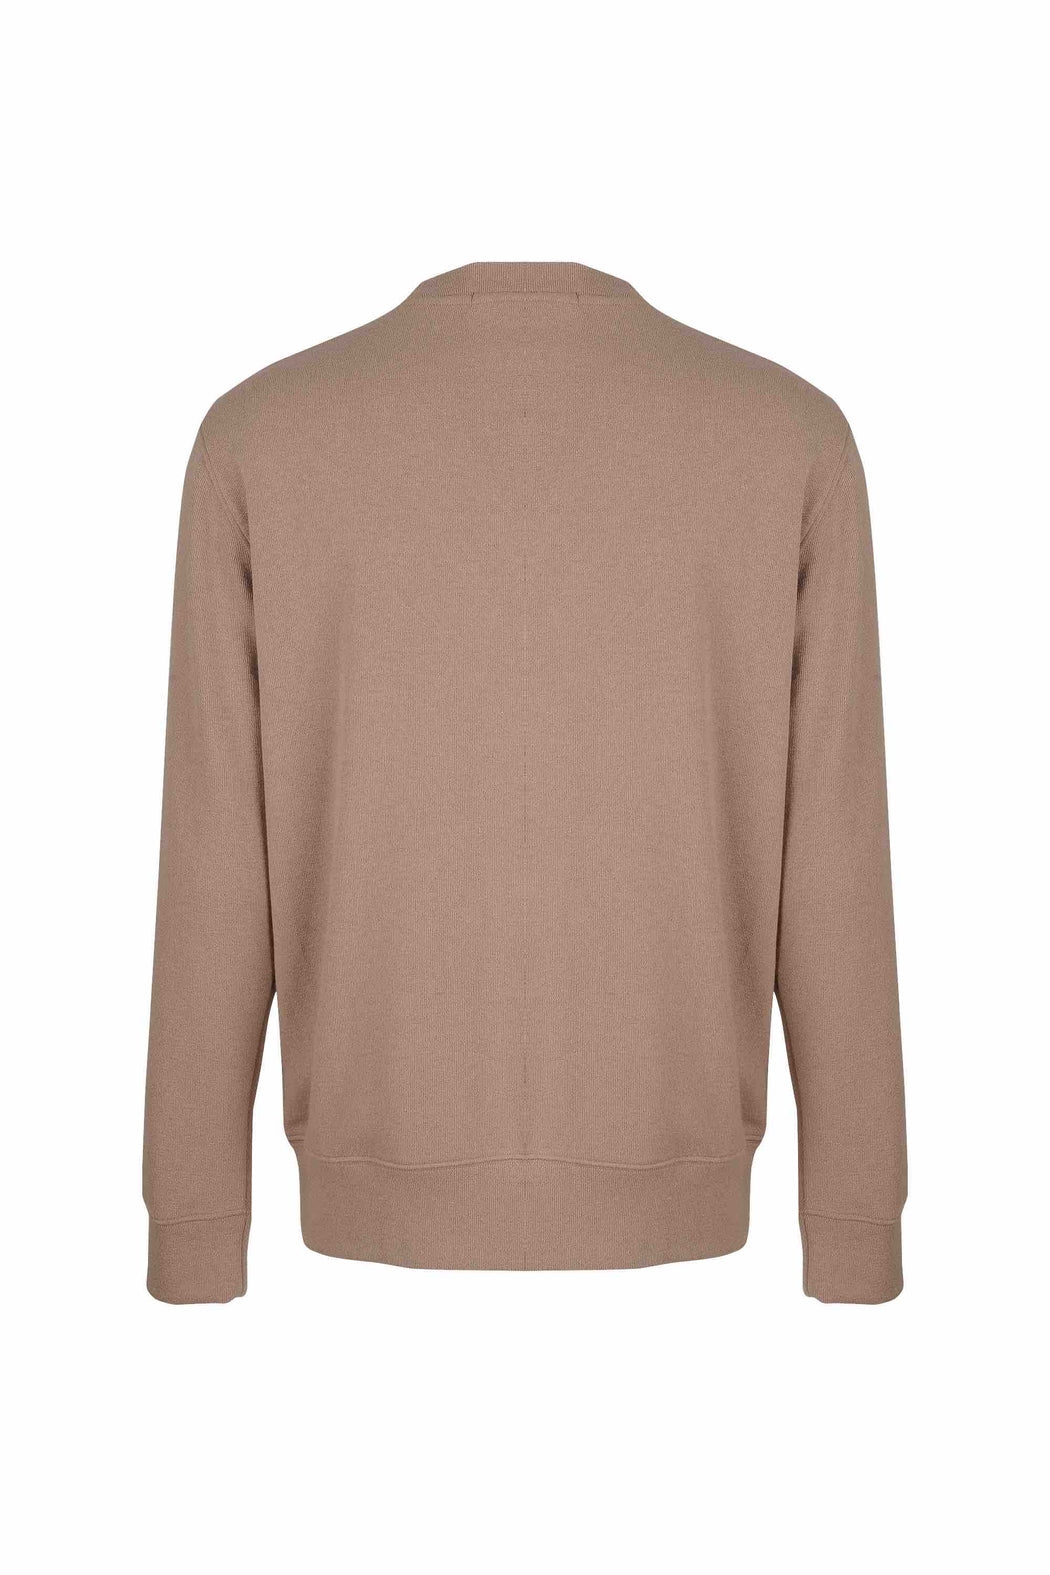 Back view of Men Pocket Blocked Sweatshirt in Orange/Camel